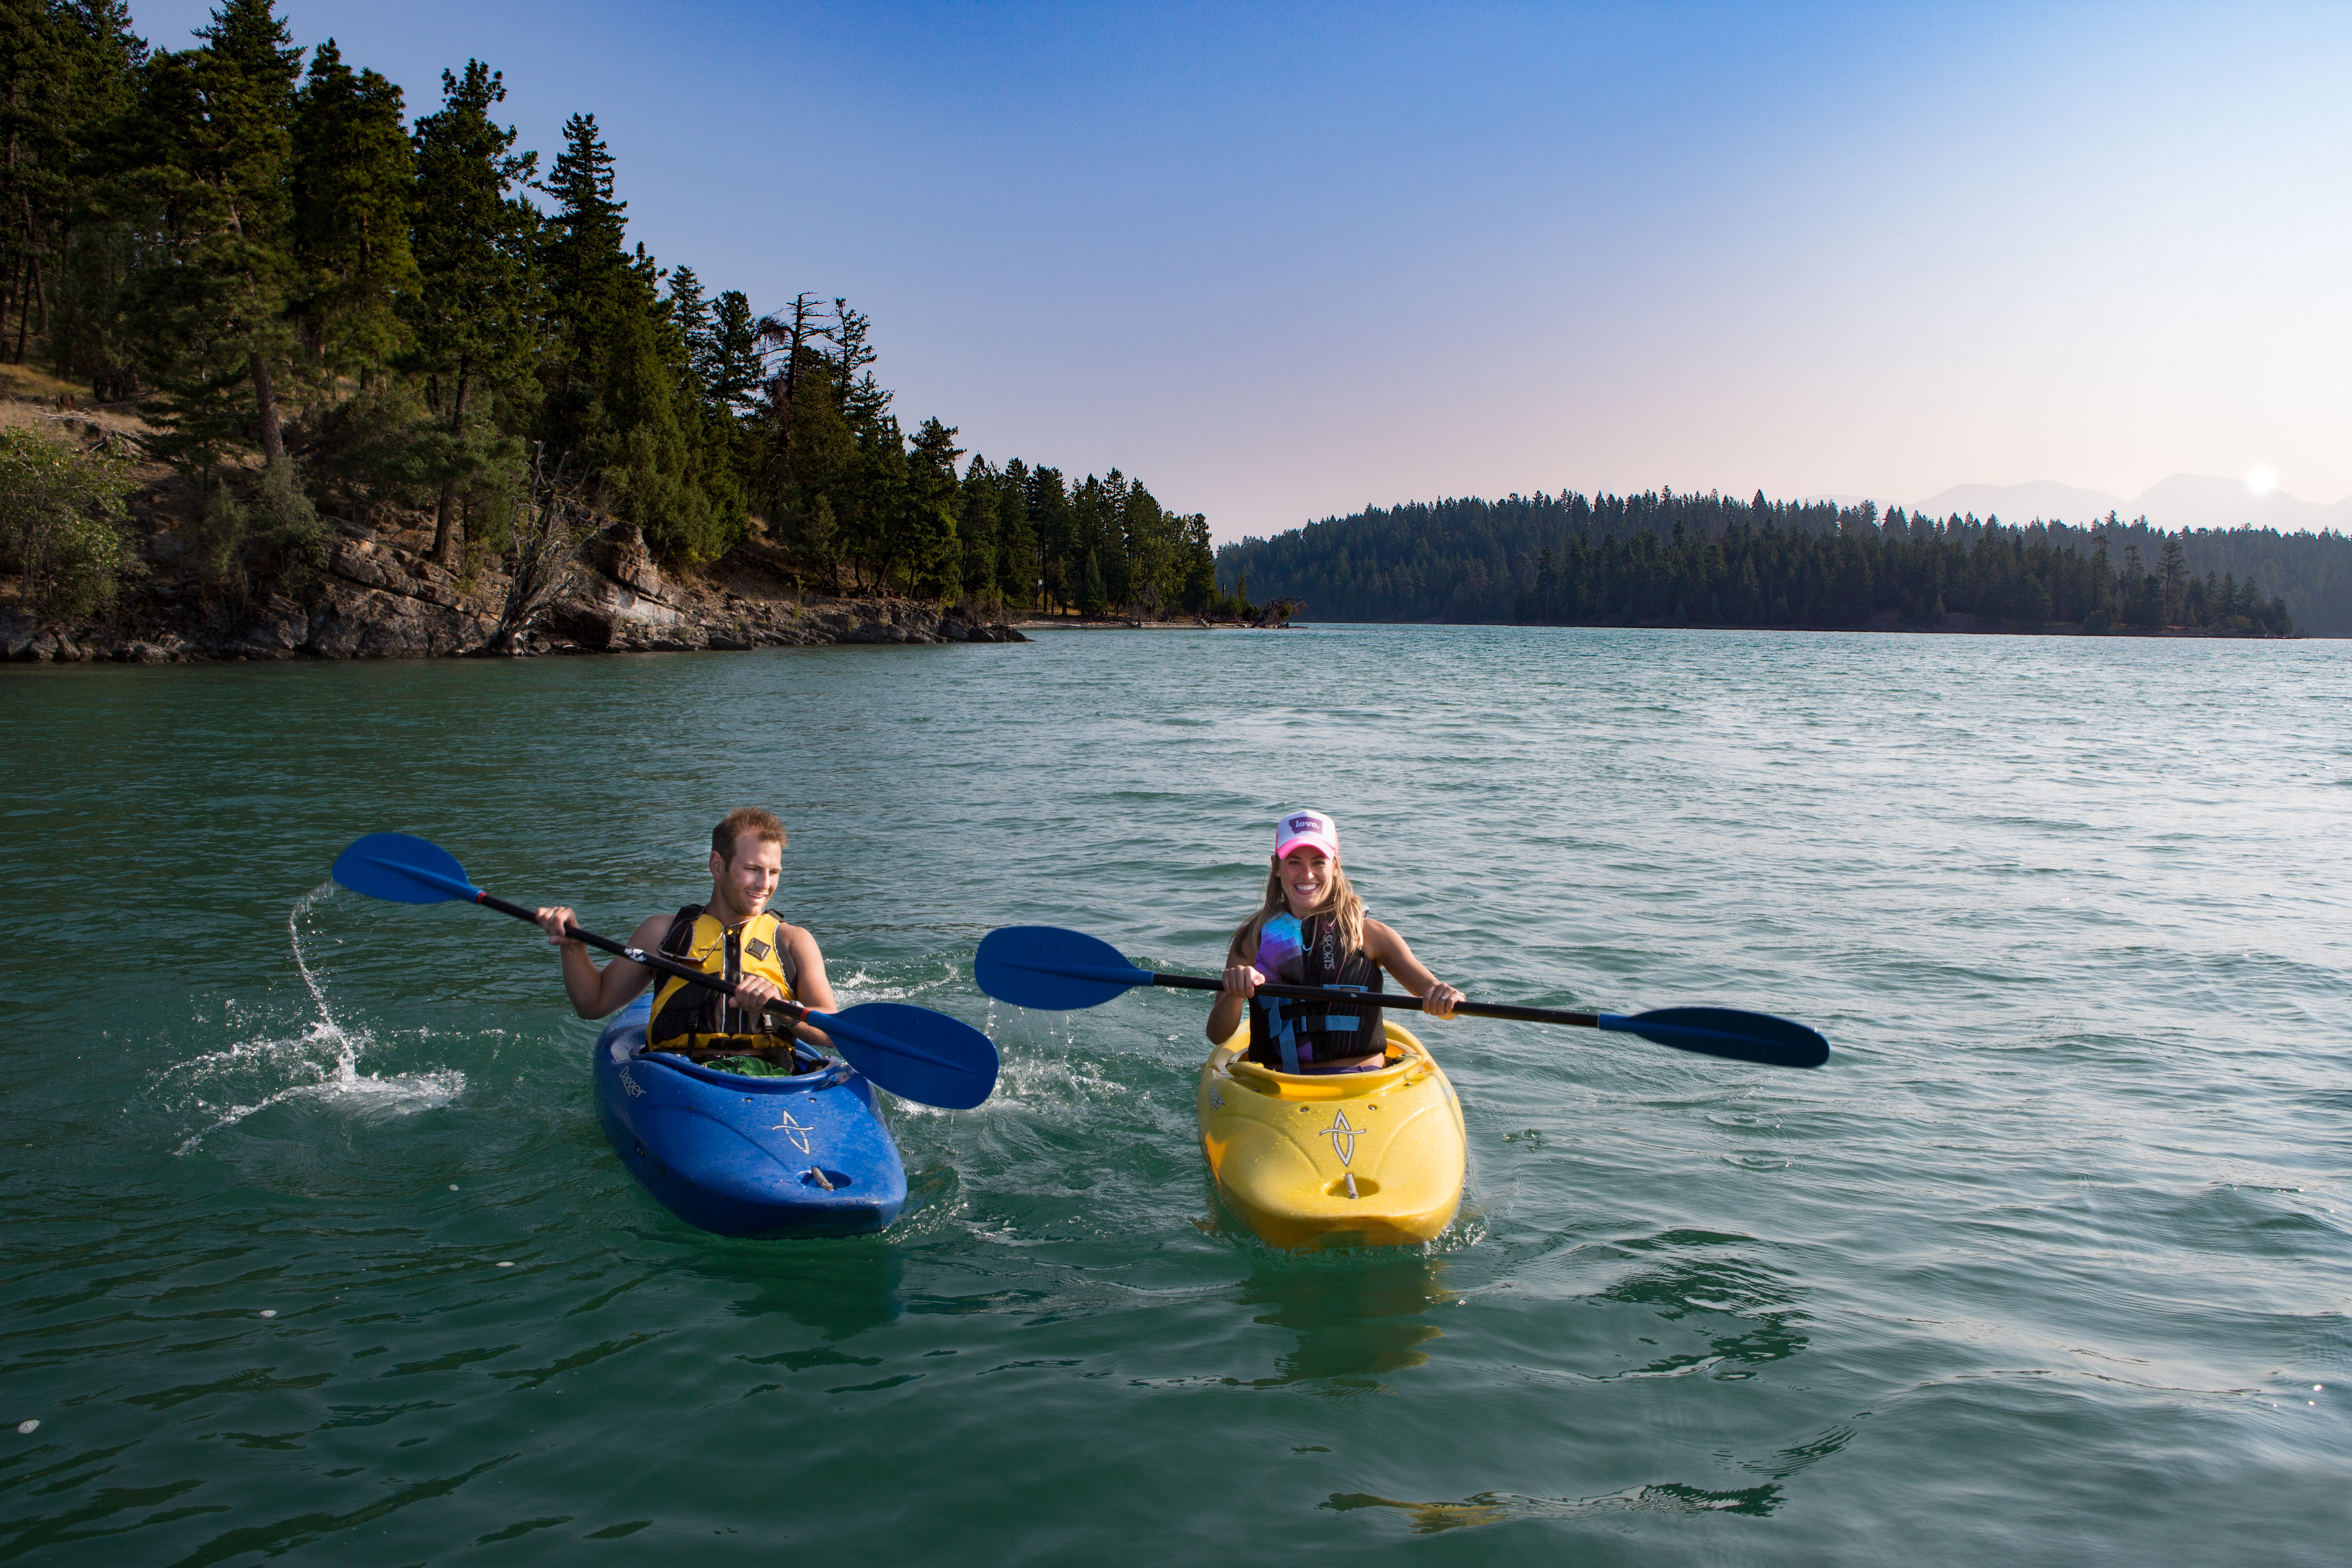 Two kayakers smile as they paddle a lake fringed in thick trees.